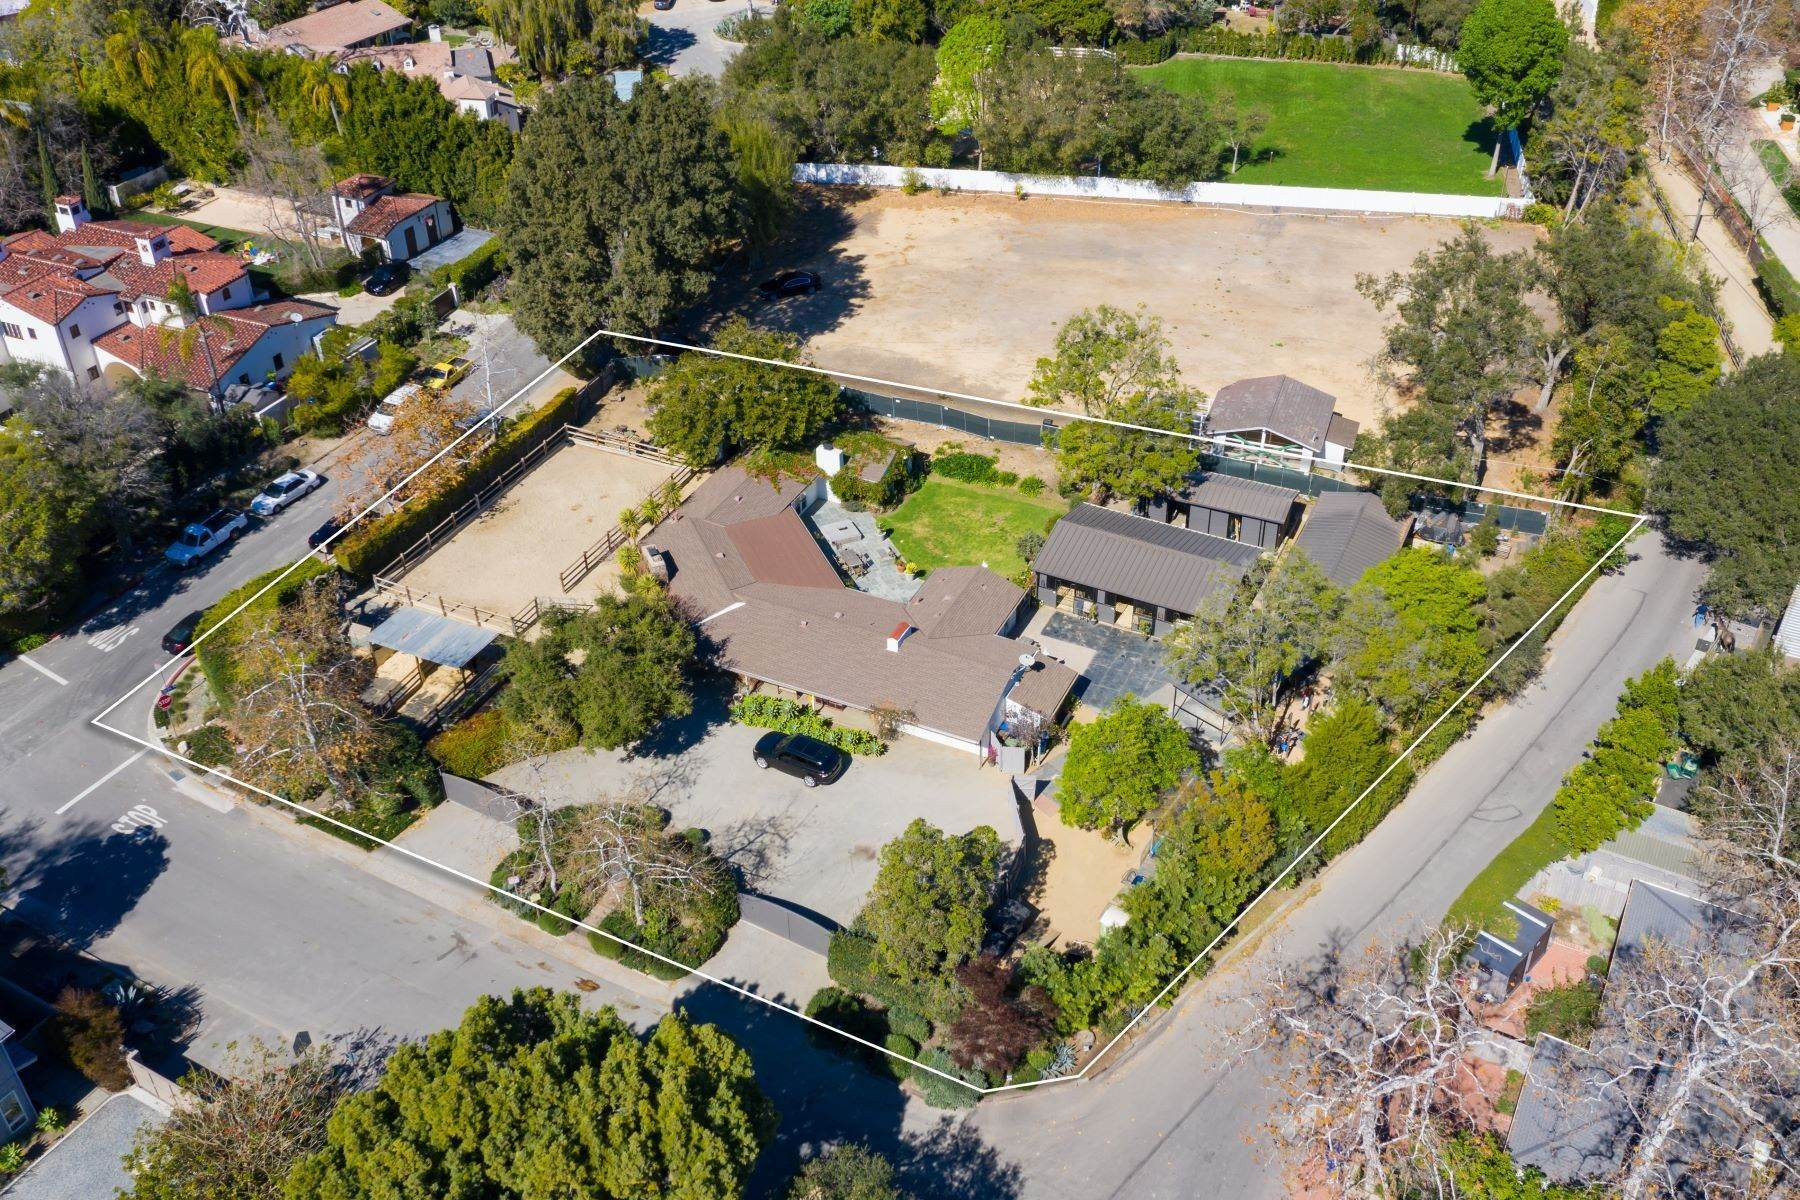 Single Family Homes for Sale at 13181 Riviera Ranch Rd 13181 Riviera Ranch Road Los Angeles, California 90049 United States